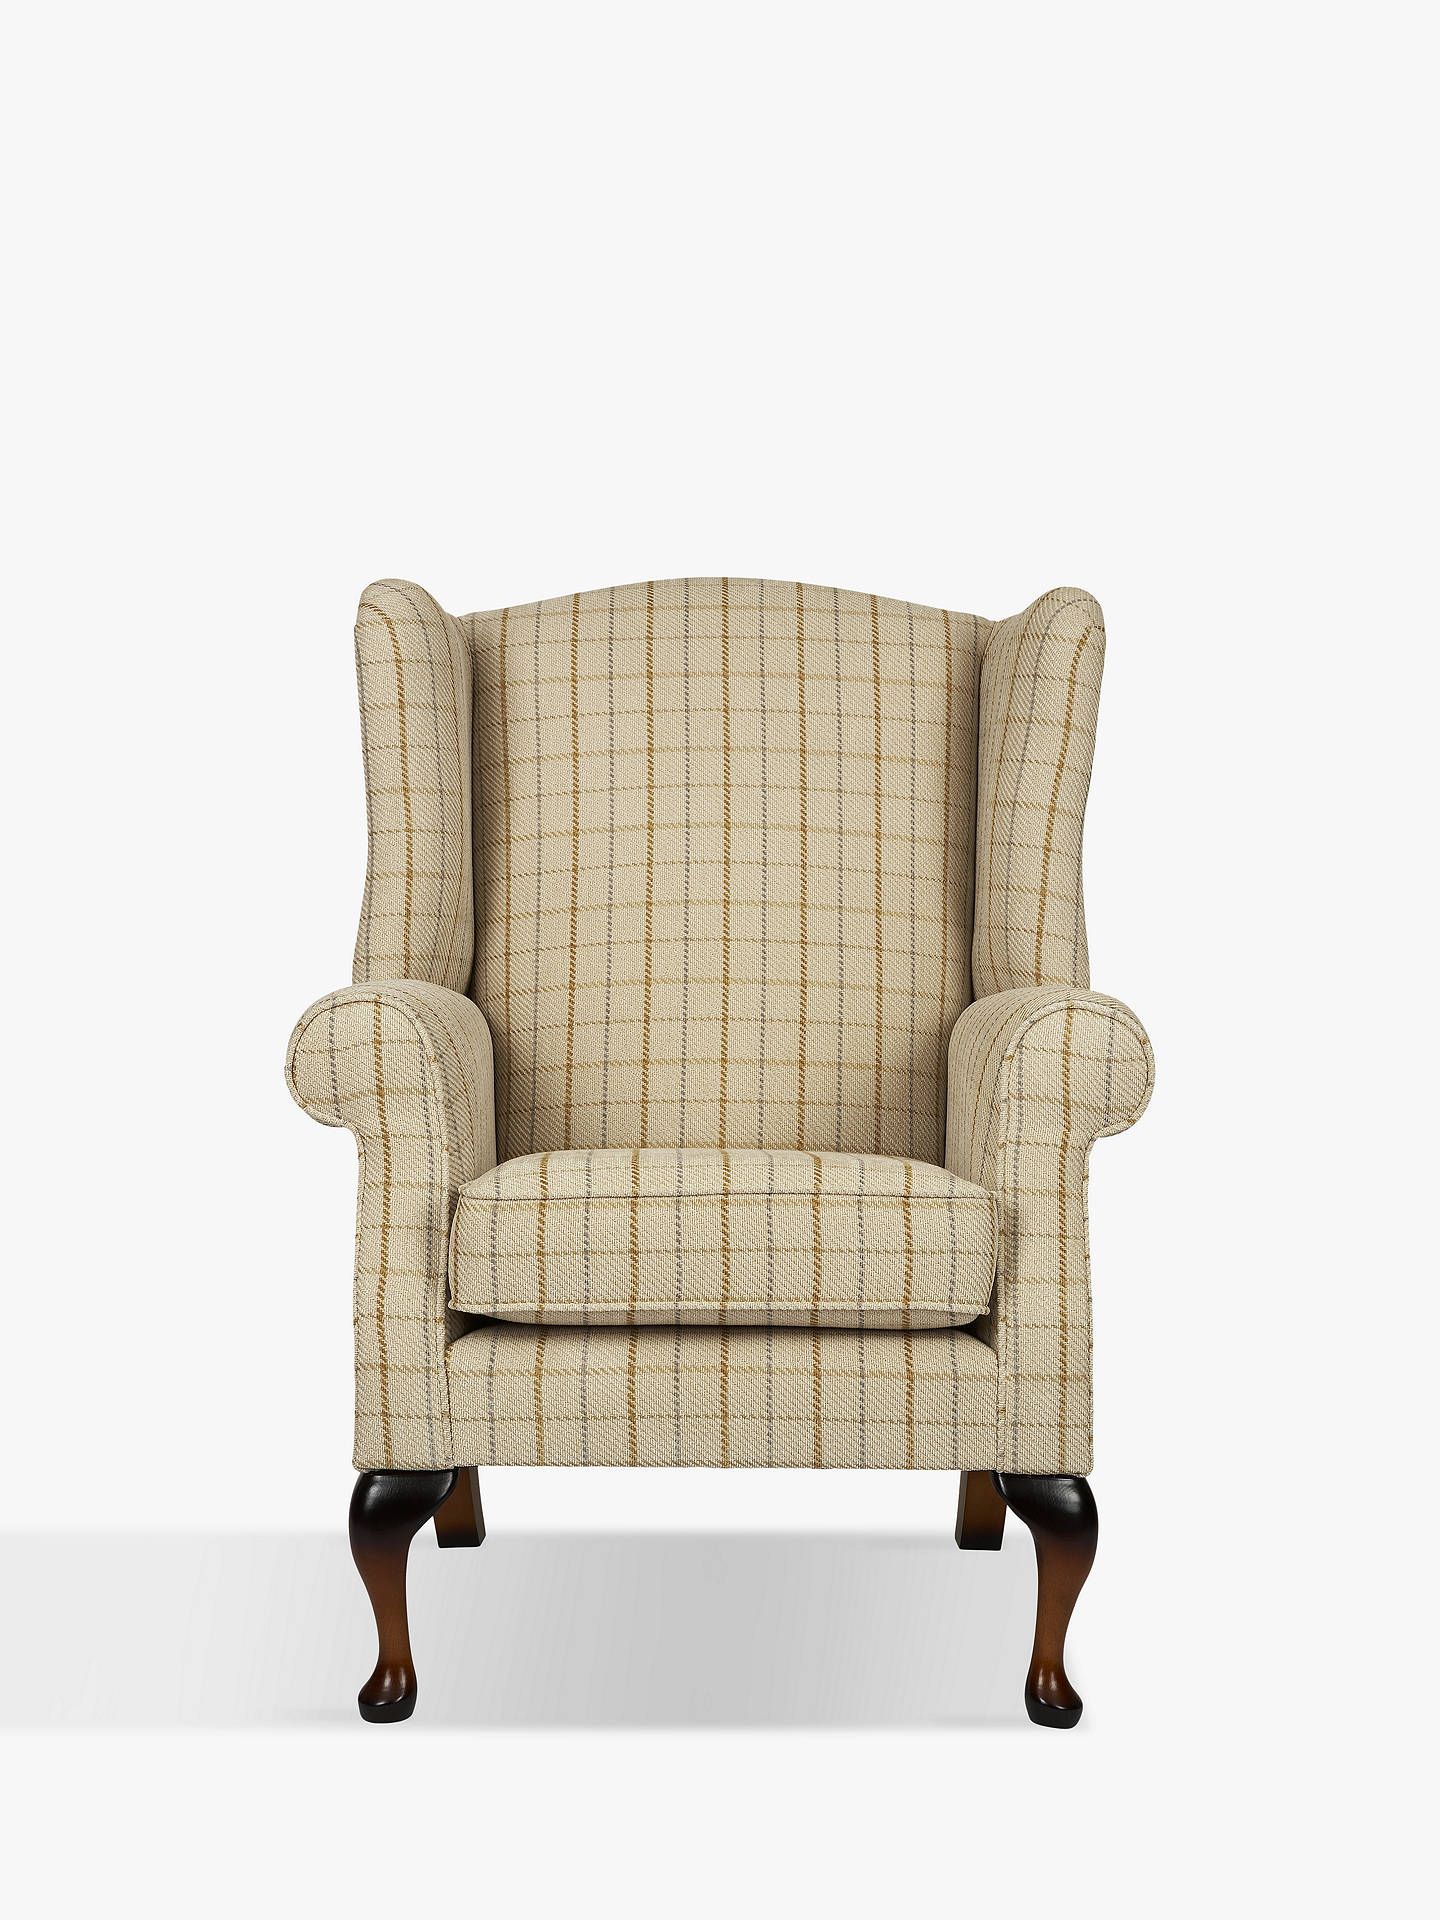 Tremendous Parker Knoll Oberon Armchair Sandringham Check Evergreenethics Interior Chair Design Evergreenethicsorg